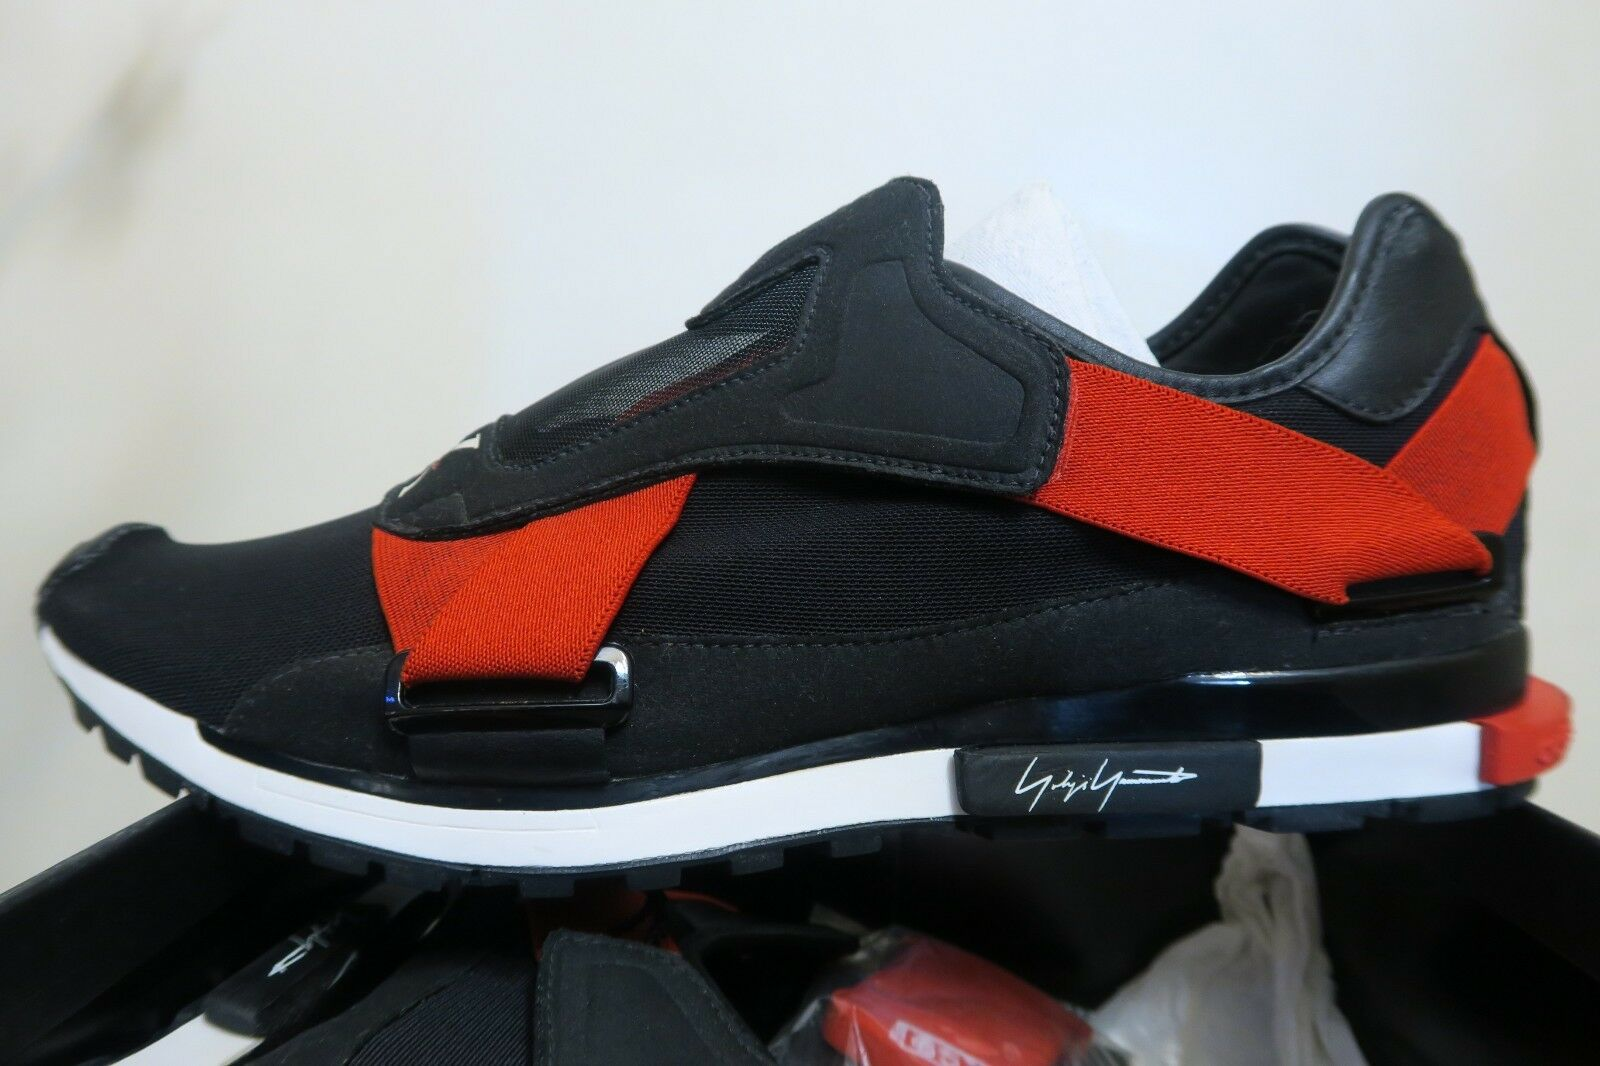 """Adidas to Micropacer """"Yohjipacer"""" Limited to Adidas 300 pairs! US 9.5 d38183"""